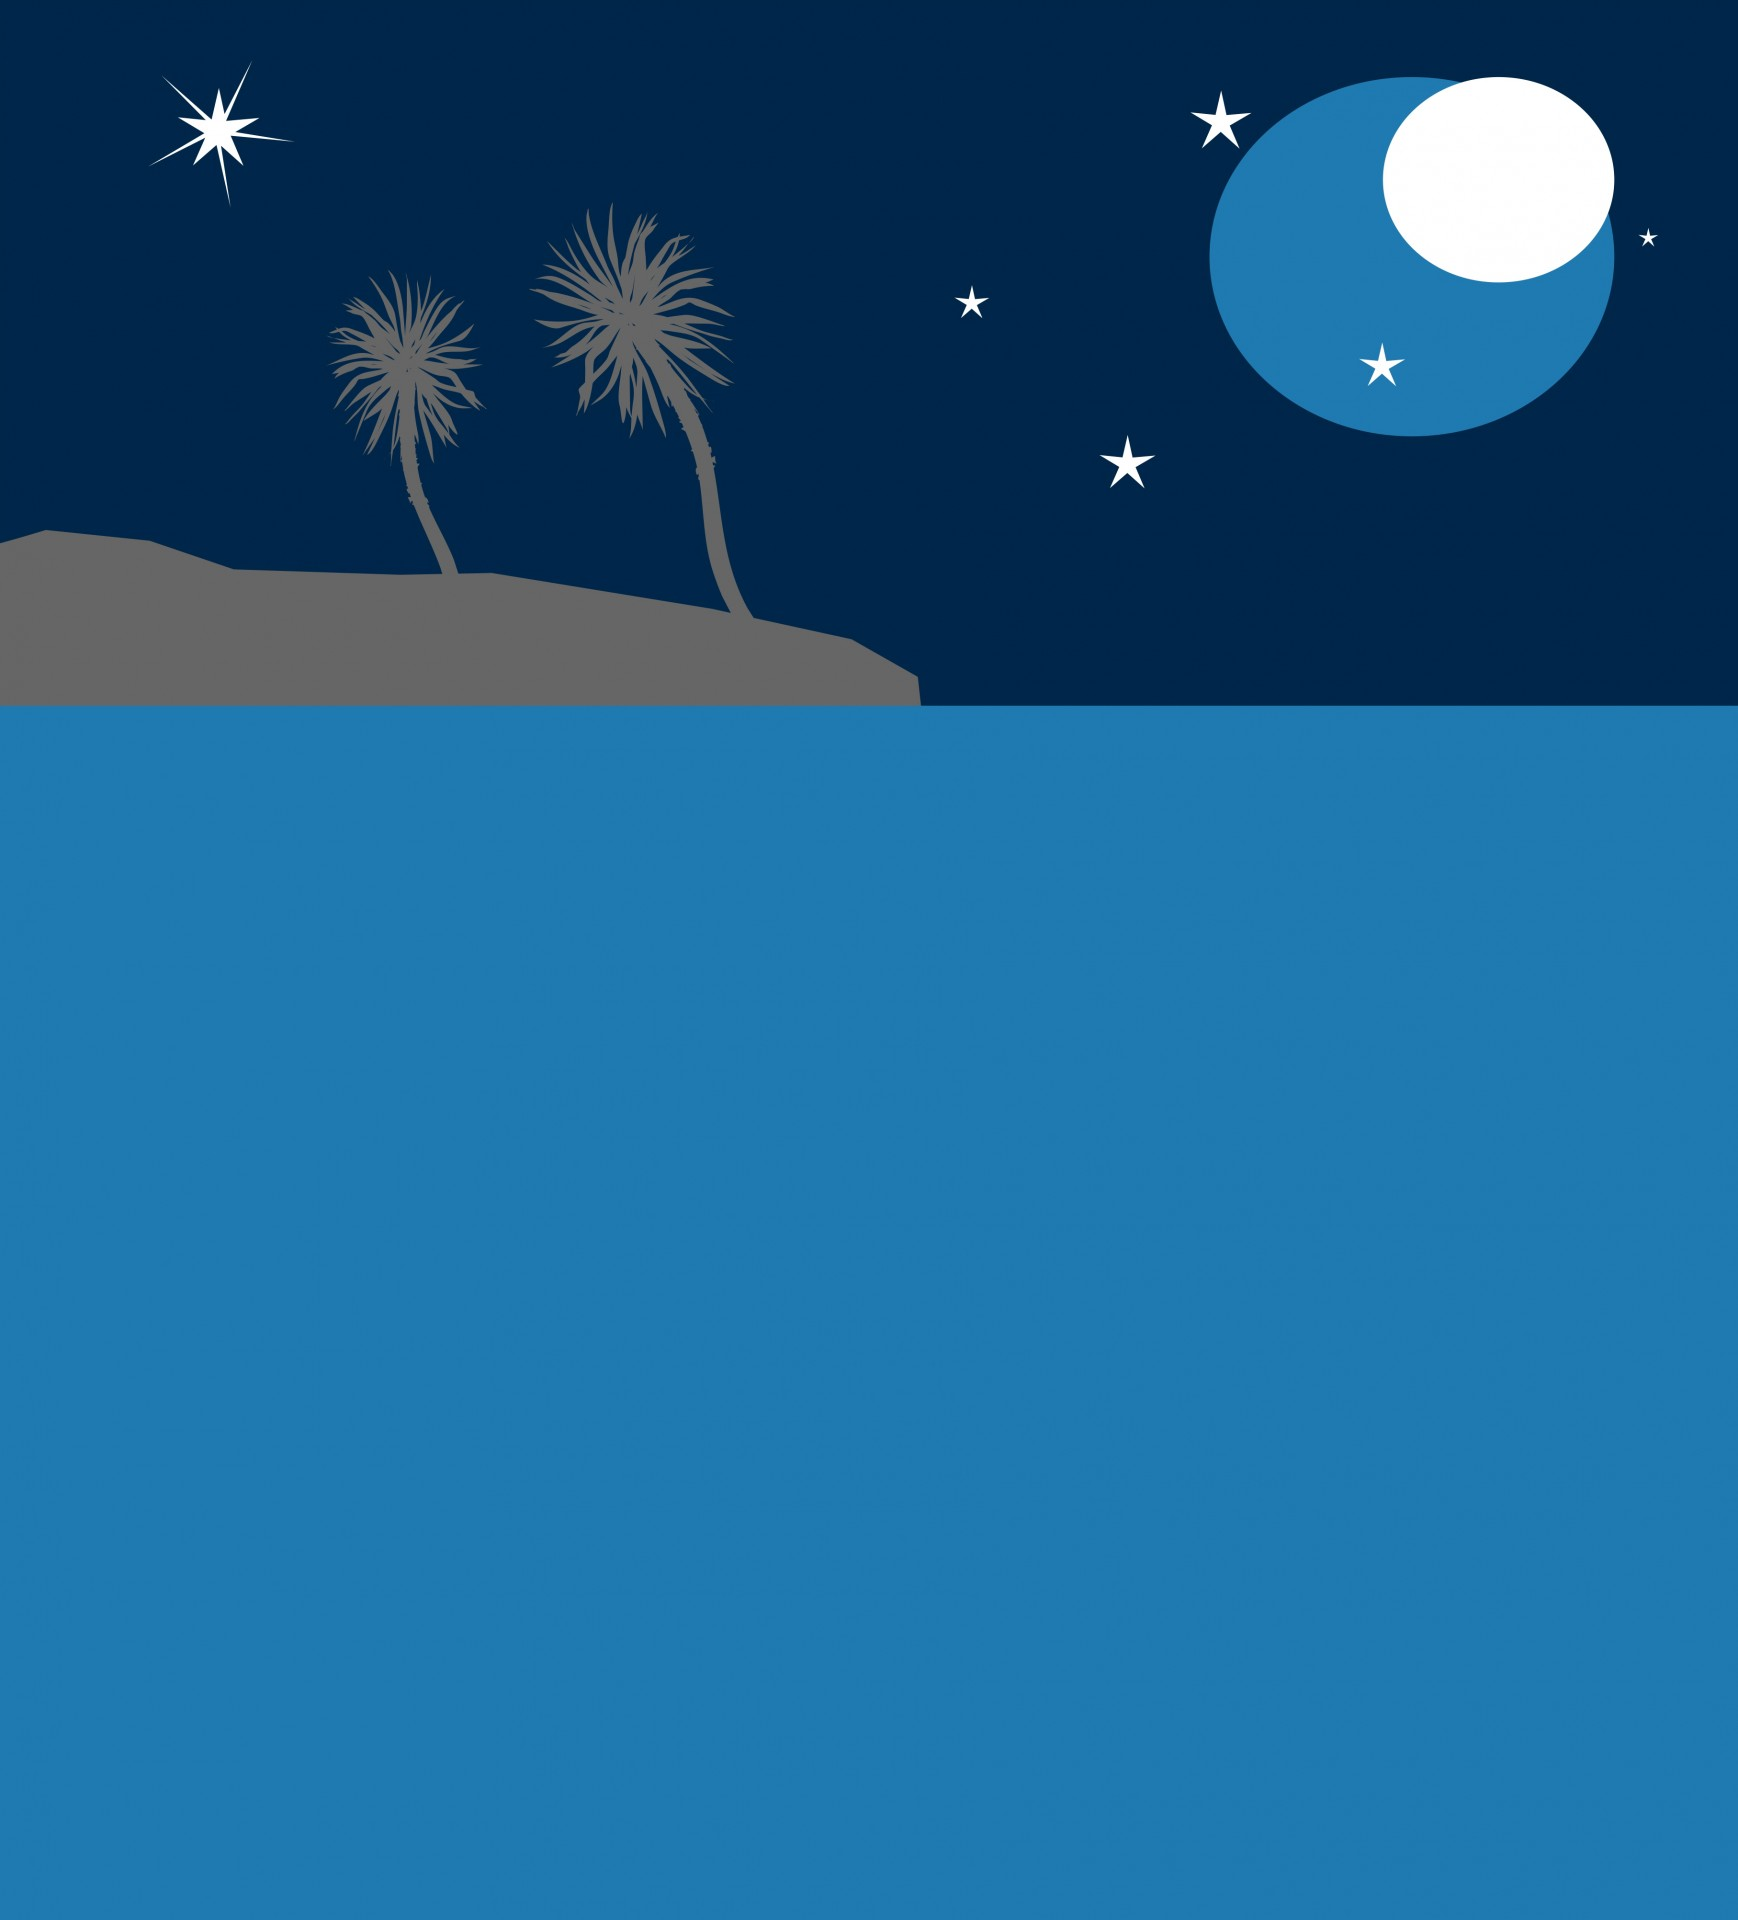 Background clipart night. Tropical backdrop free stock